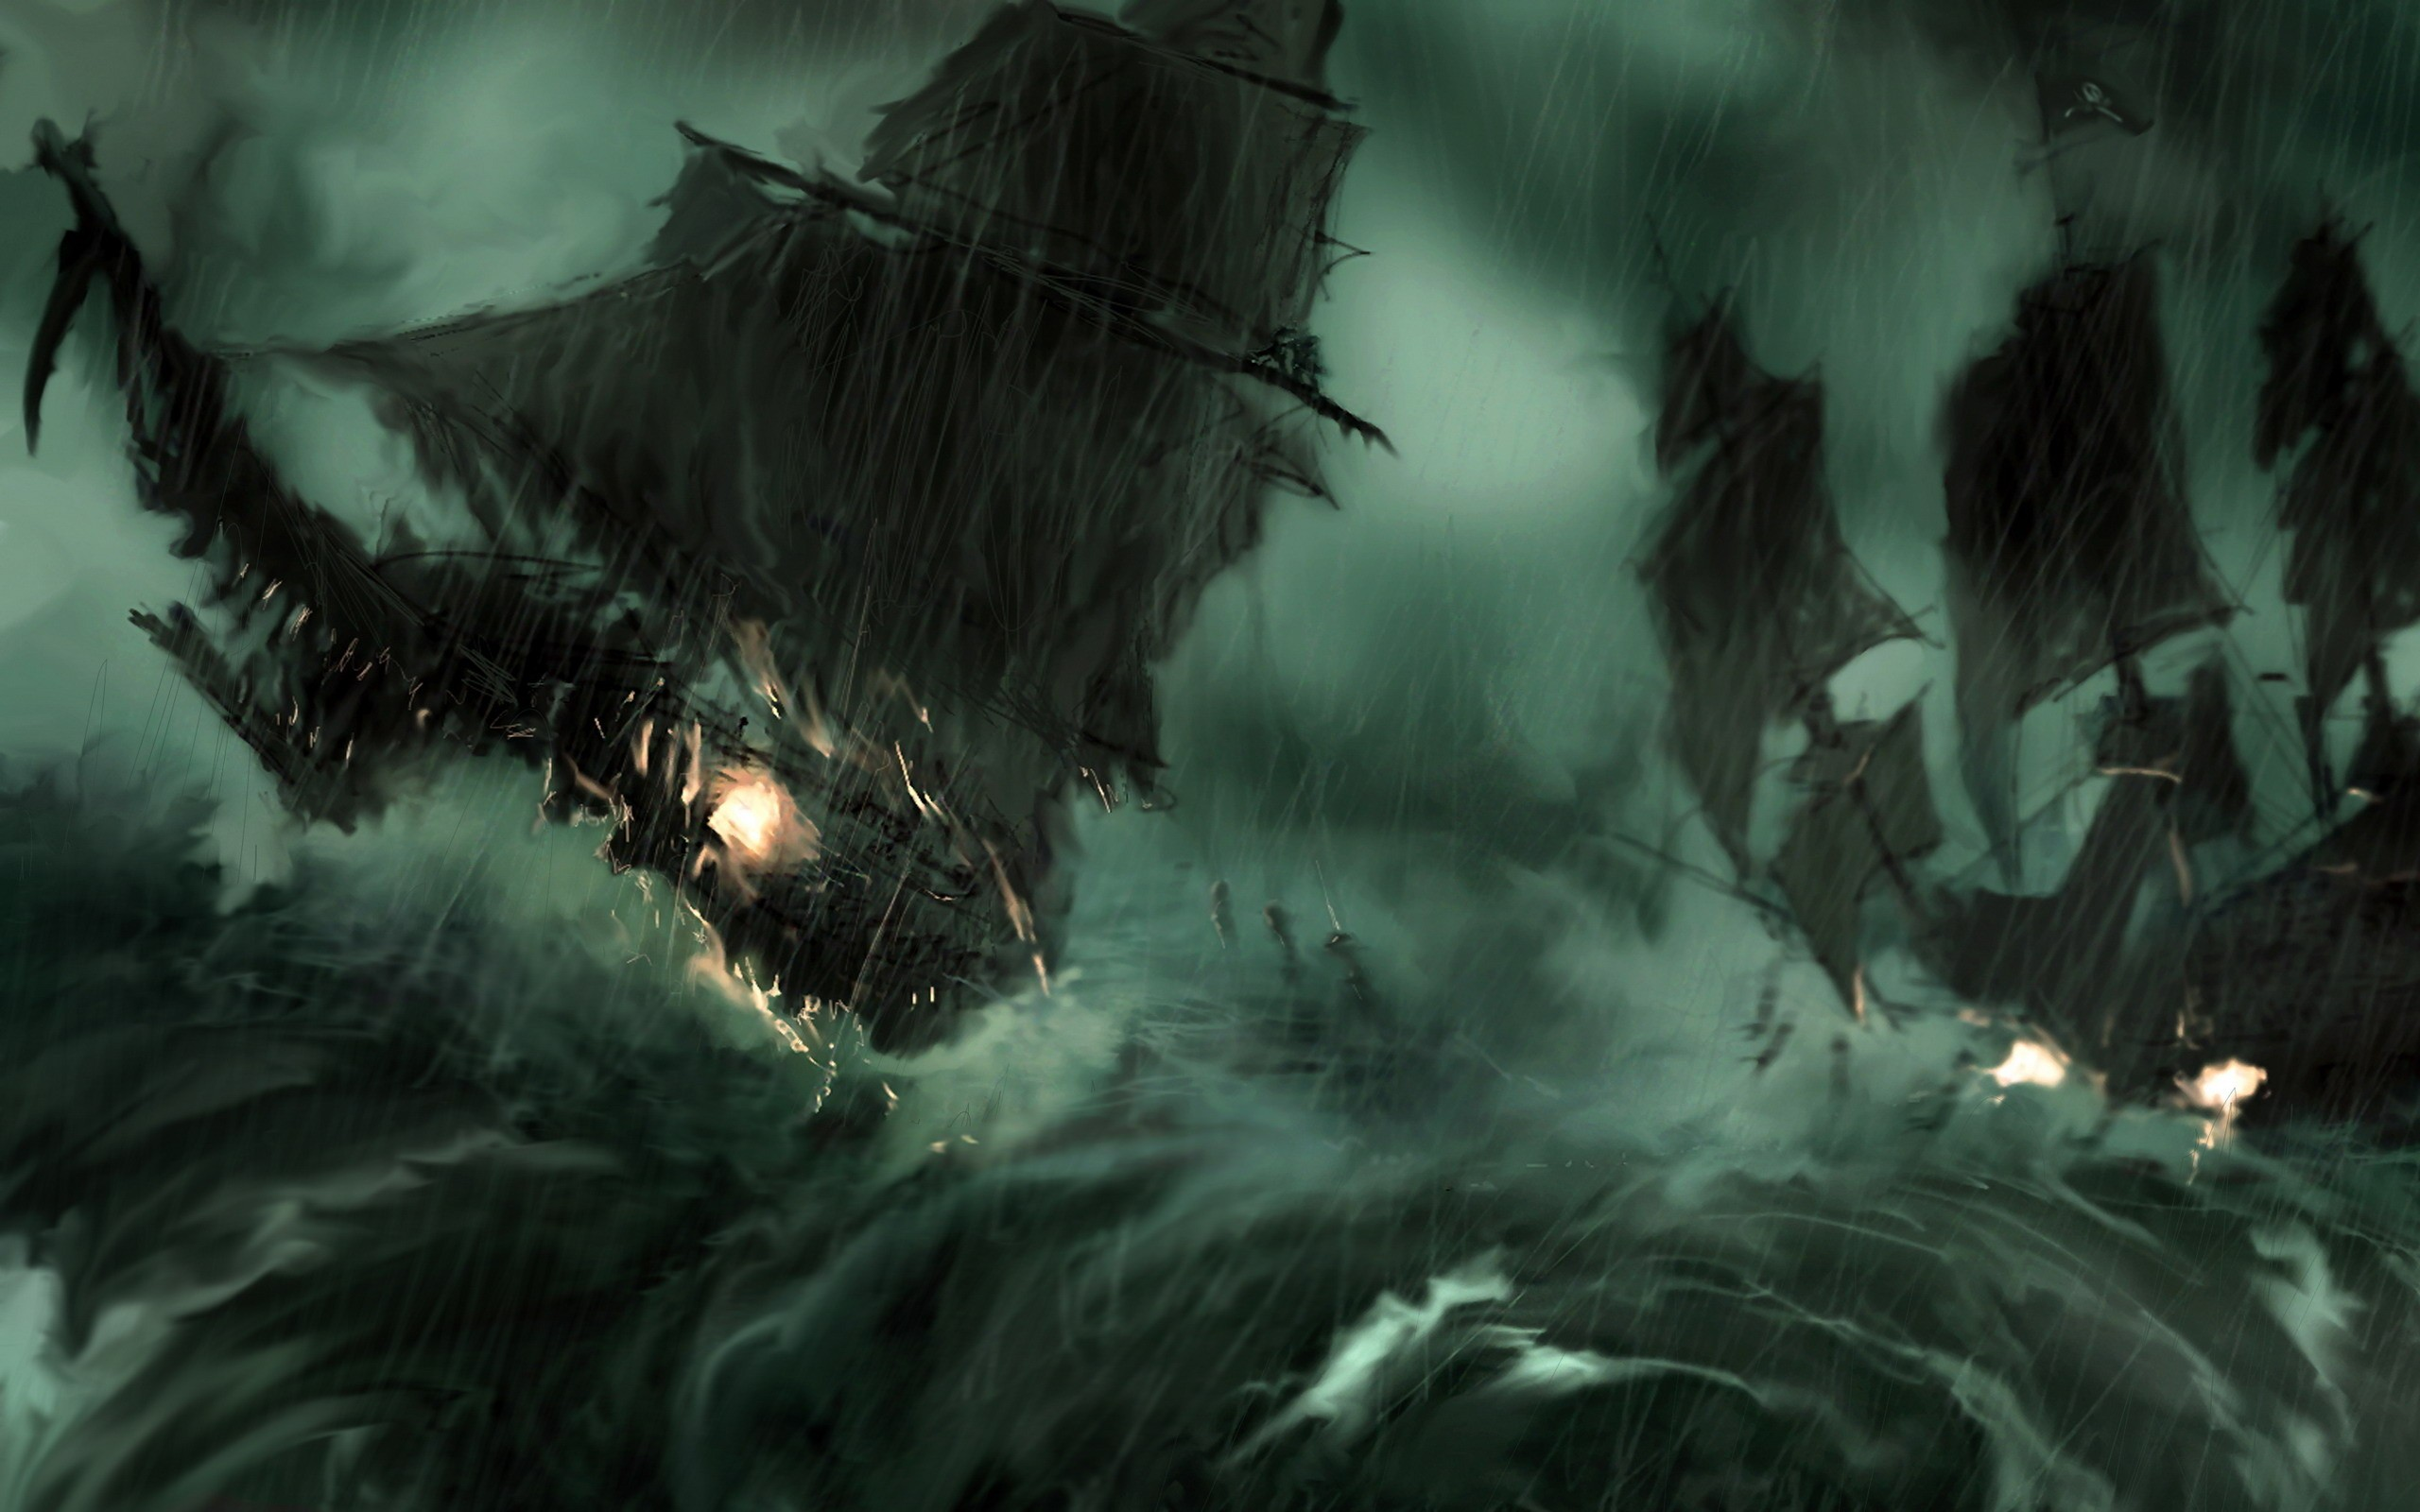 3d Wallpaper Ship Paintings Rain Pirate Ship Storm Pirates Of The Caribbean